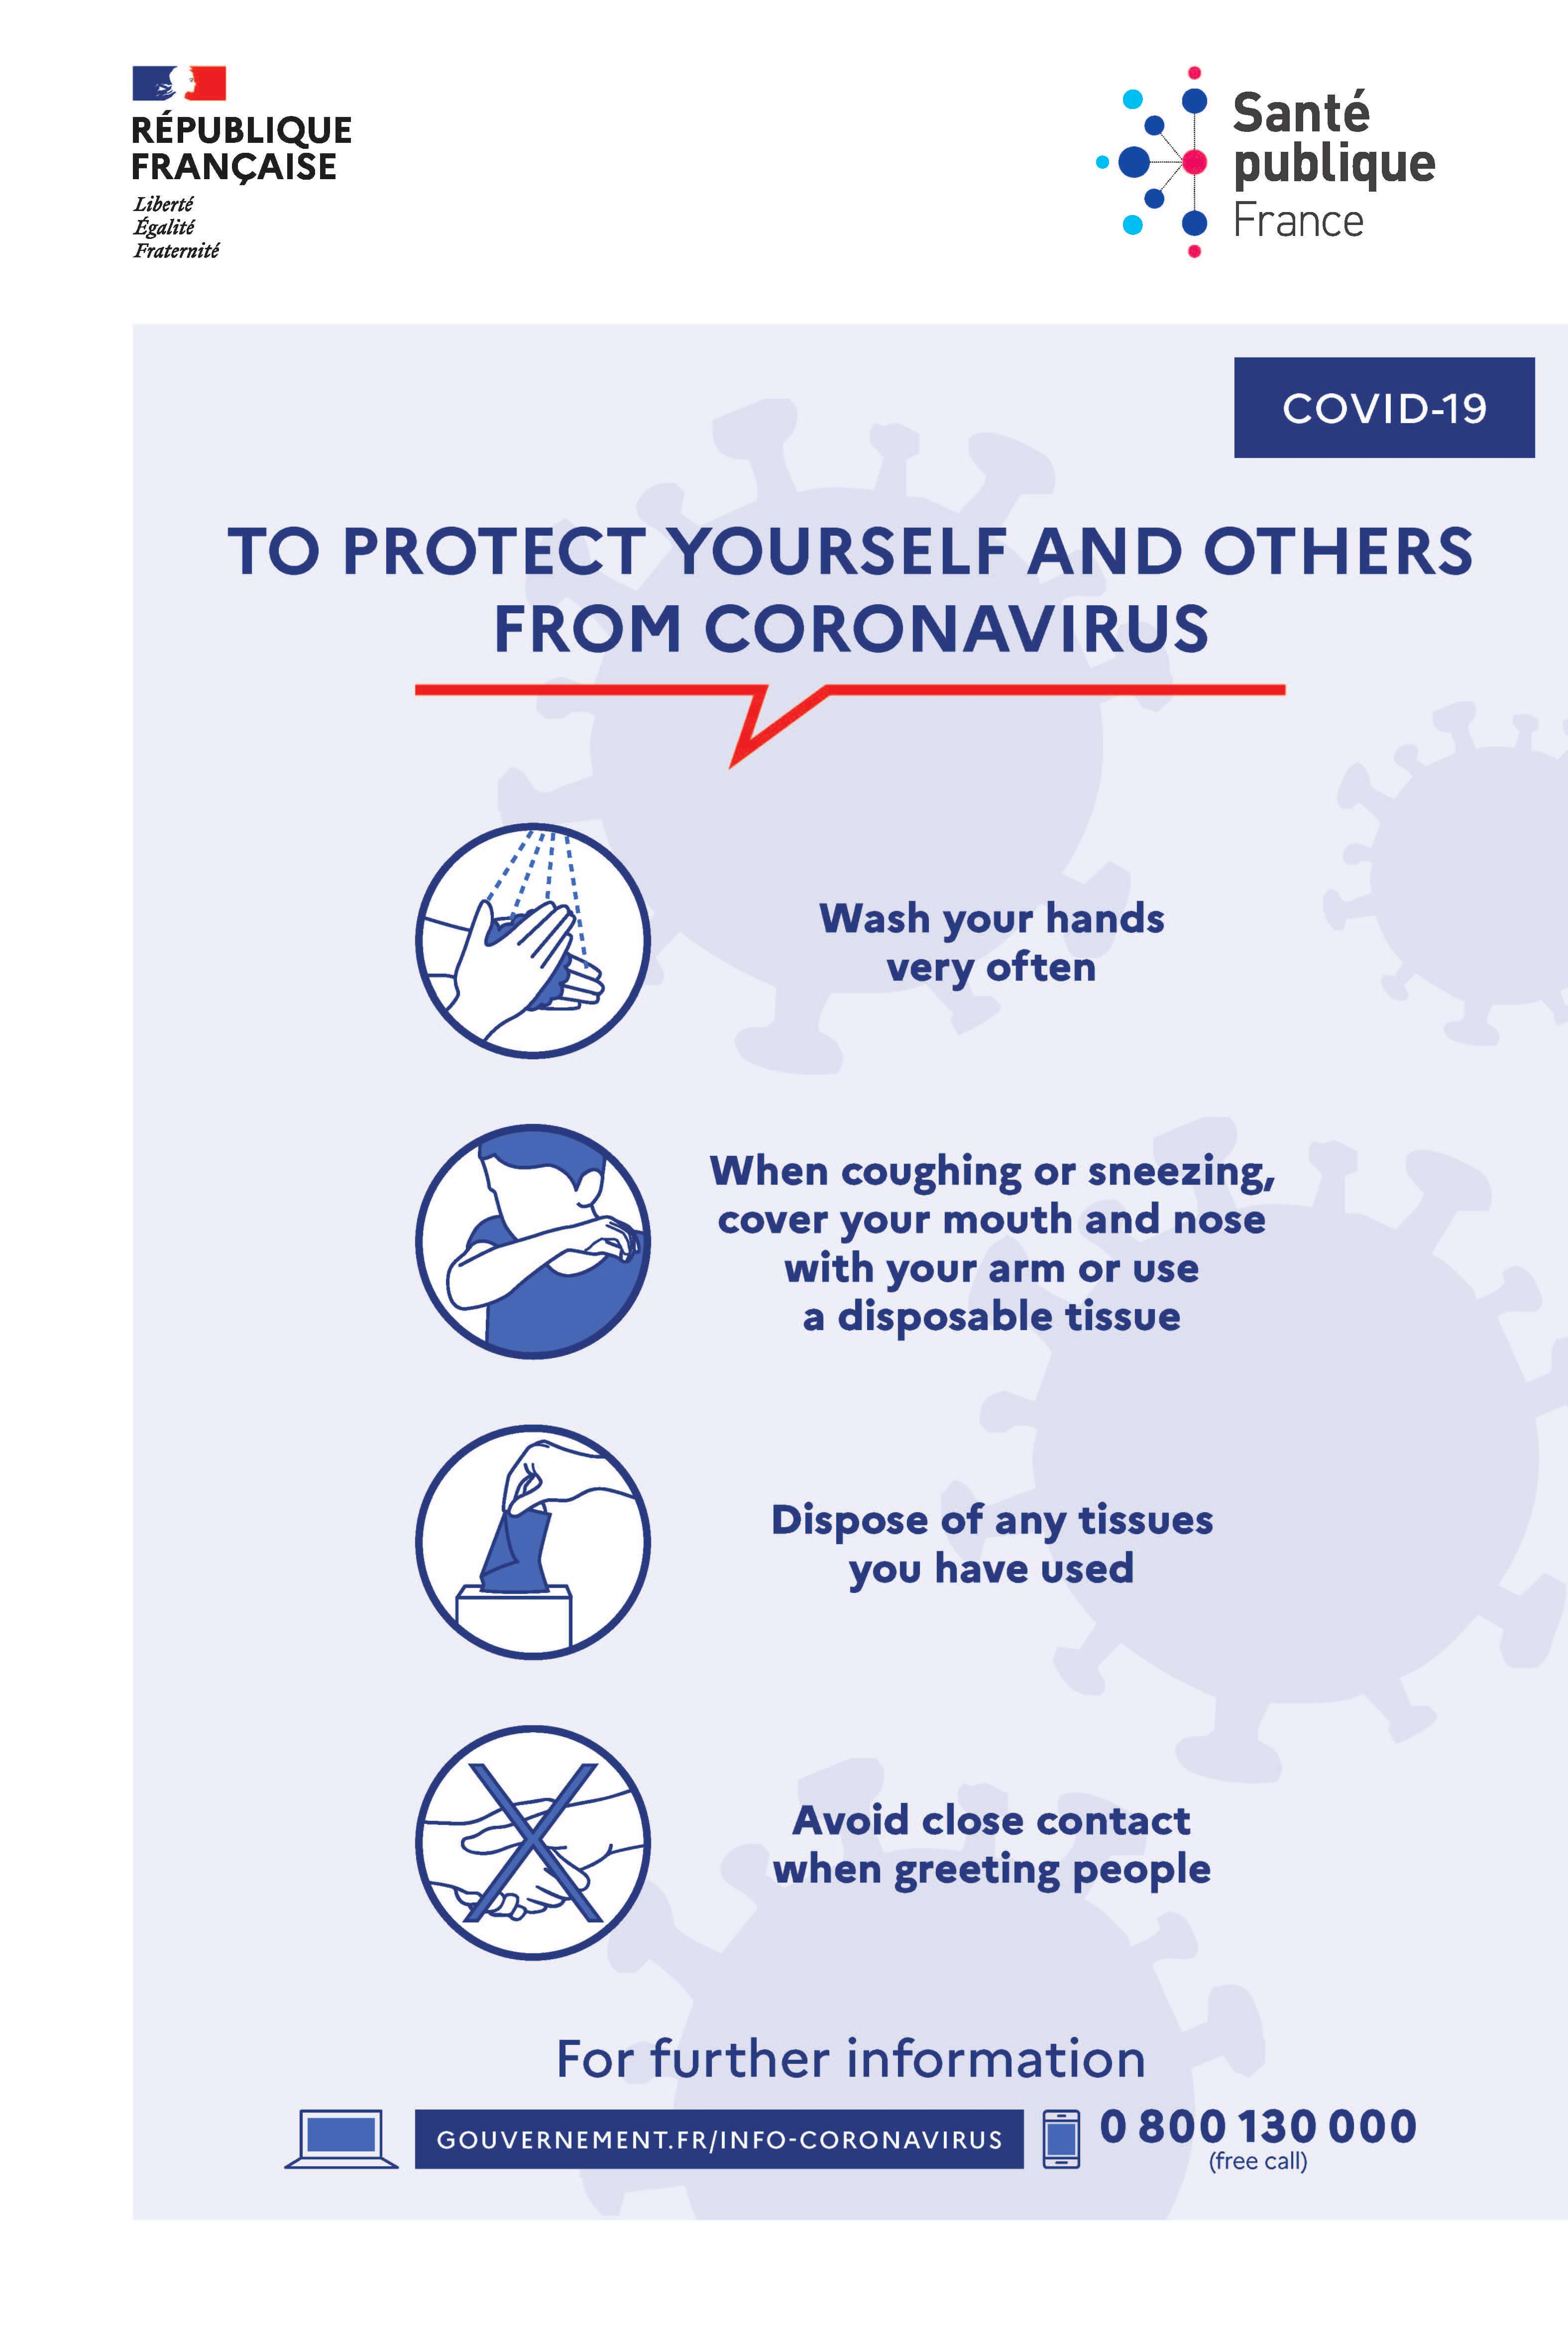 Information to protect yourself and others from coronavirus